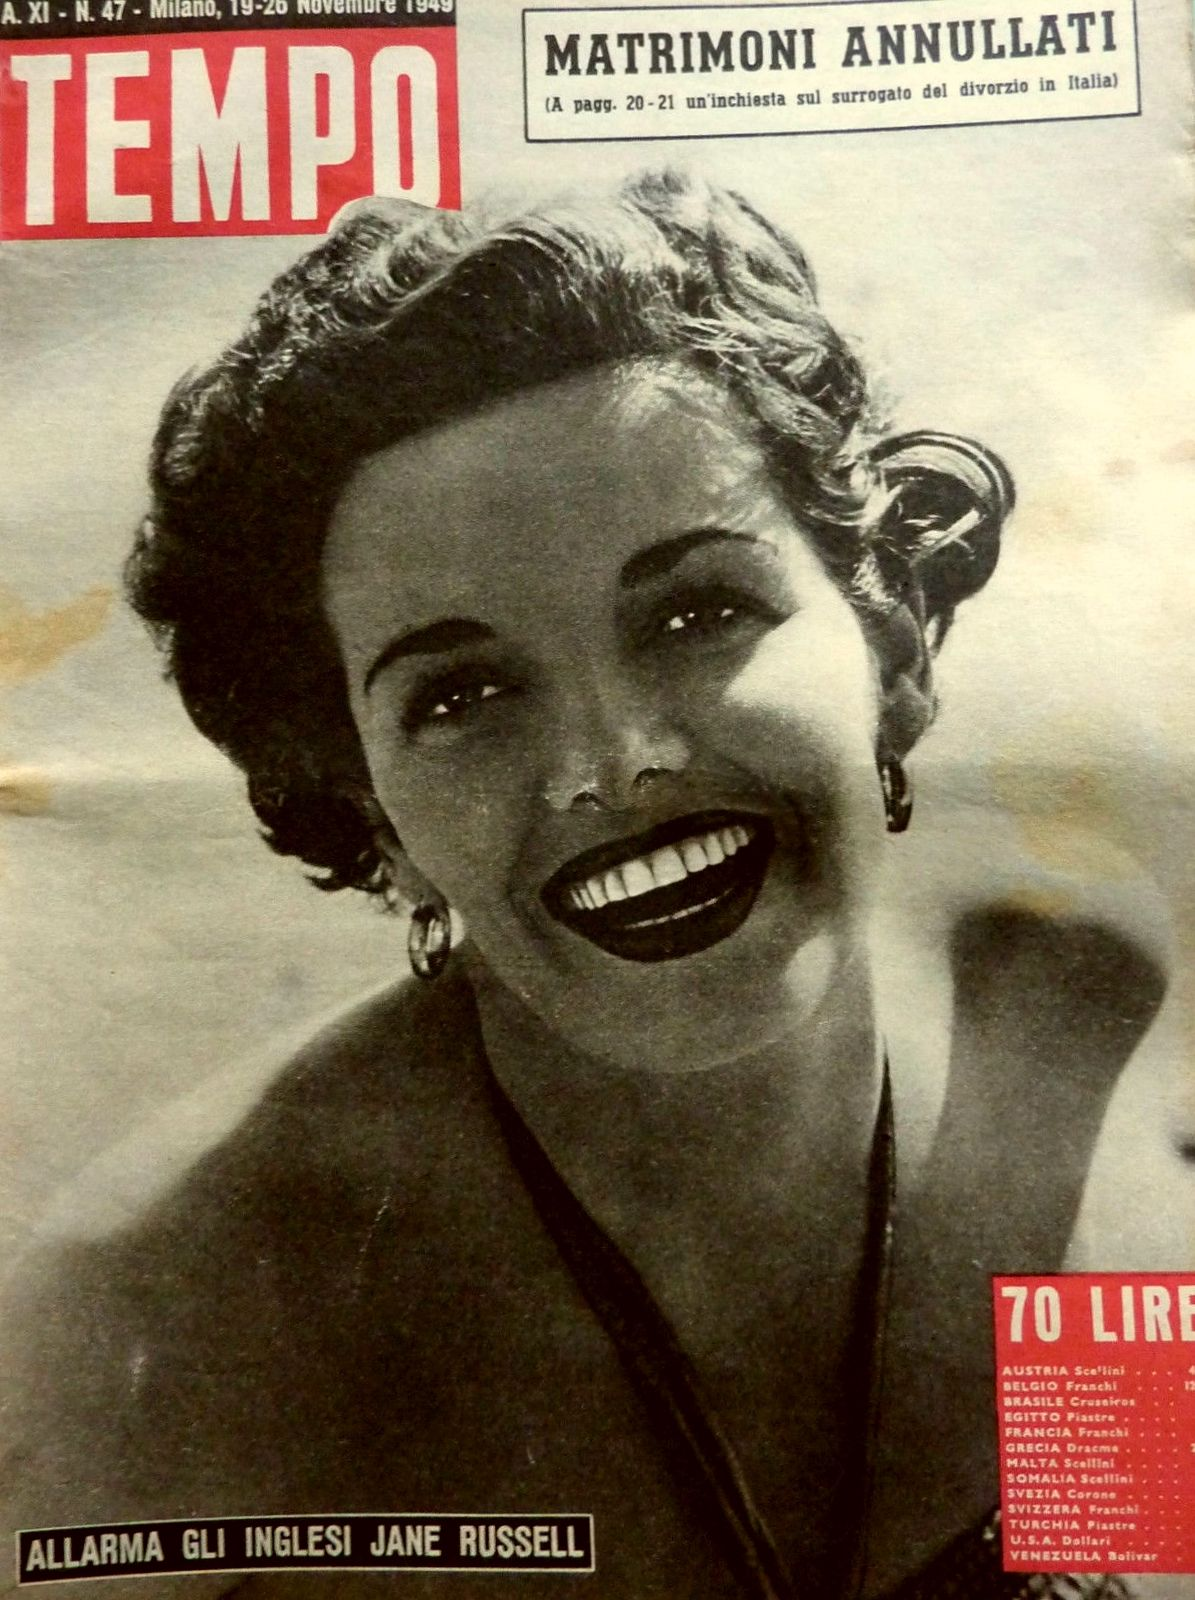 """""""Jane Russell alarms the Britons"""" (19th November 1949)."""